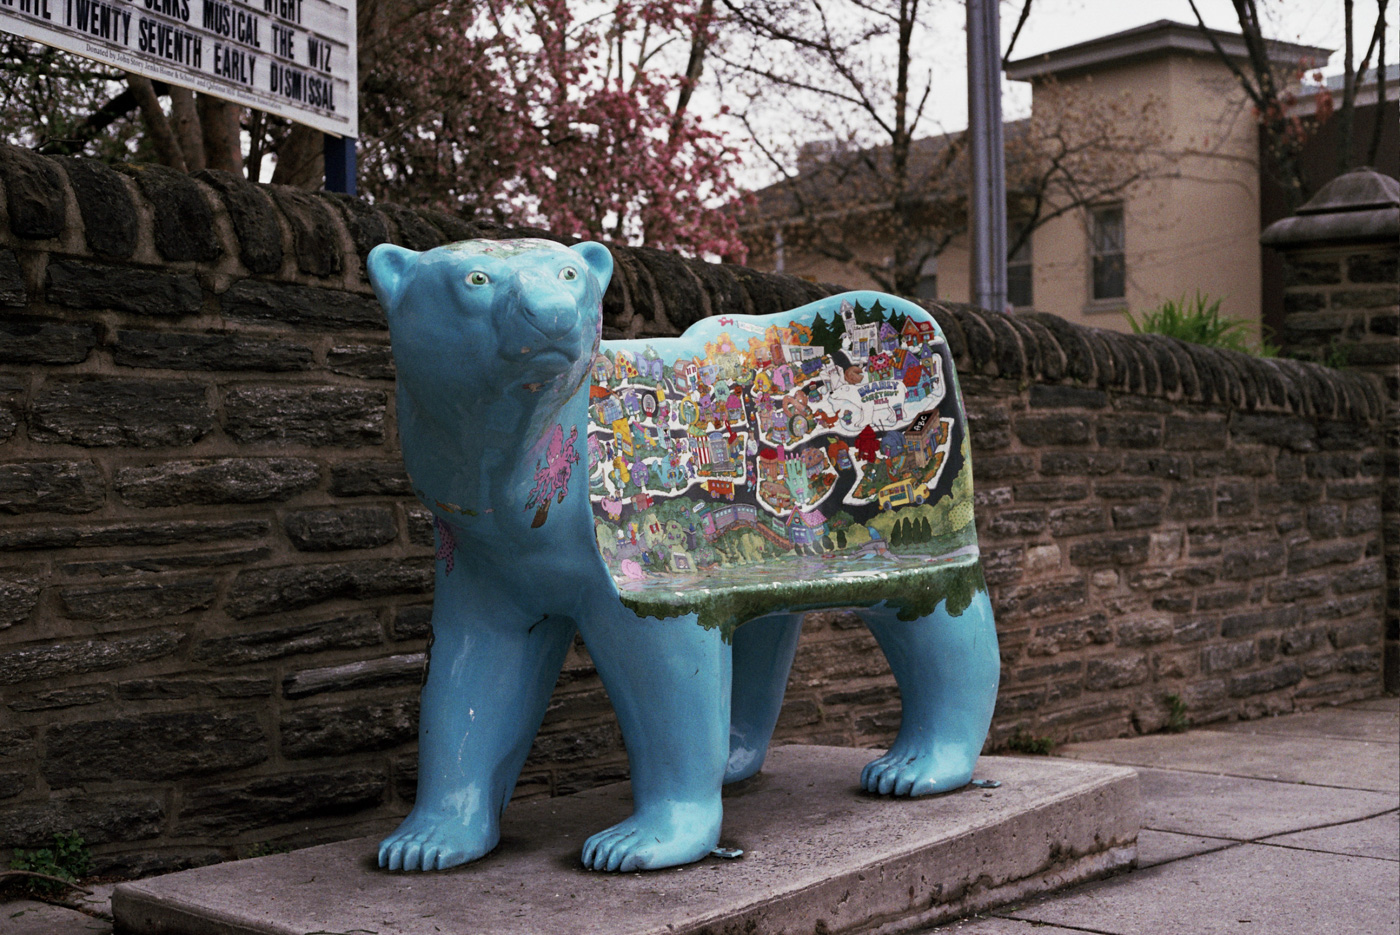 Bear Seat in Chestnut Hill